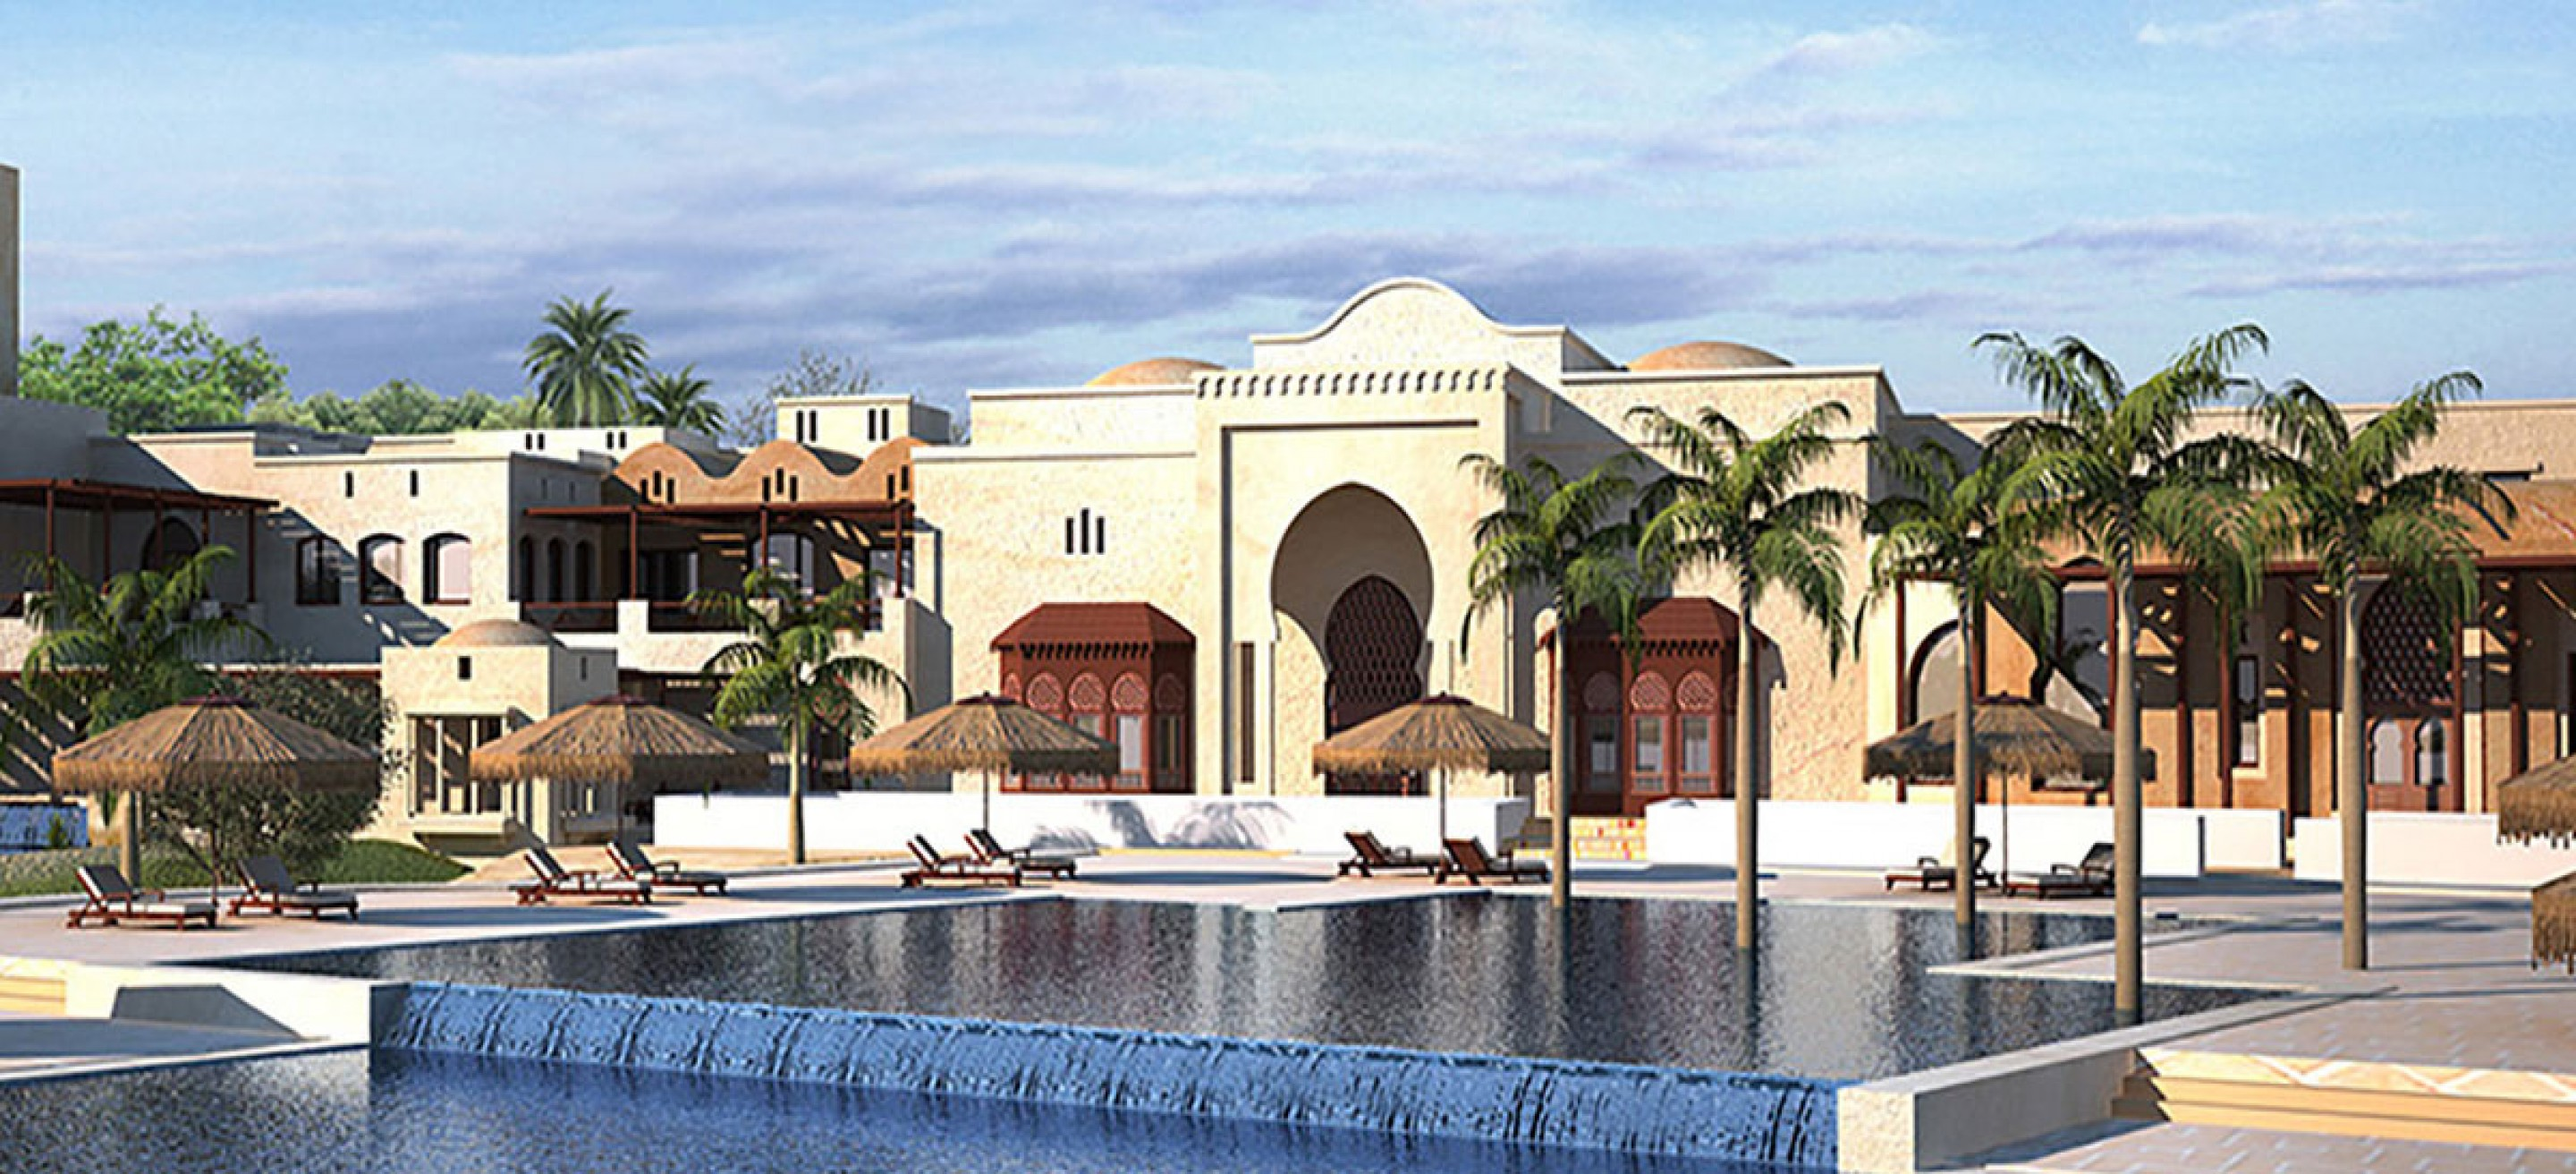 Al faisaliah hotel the gettys group - Hotels in riyadh with swimming pools ...